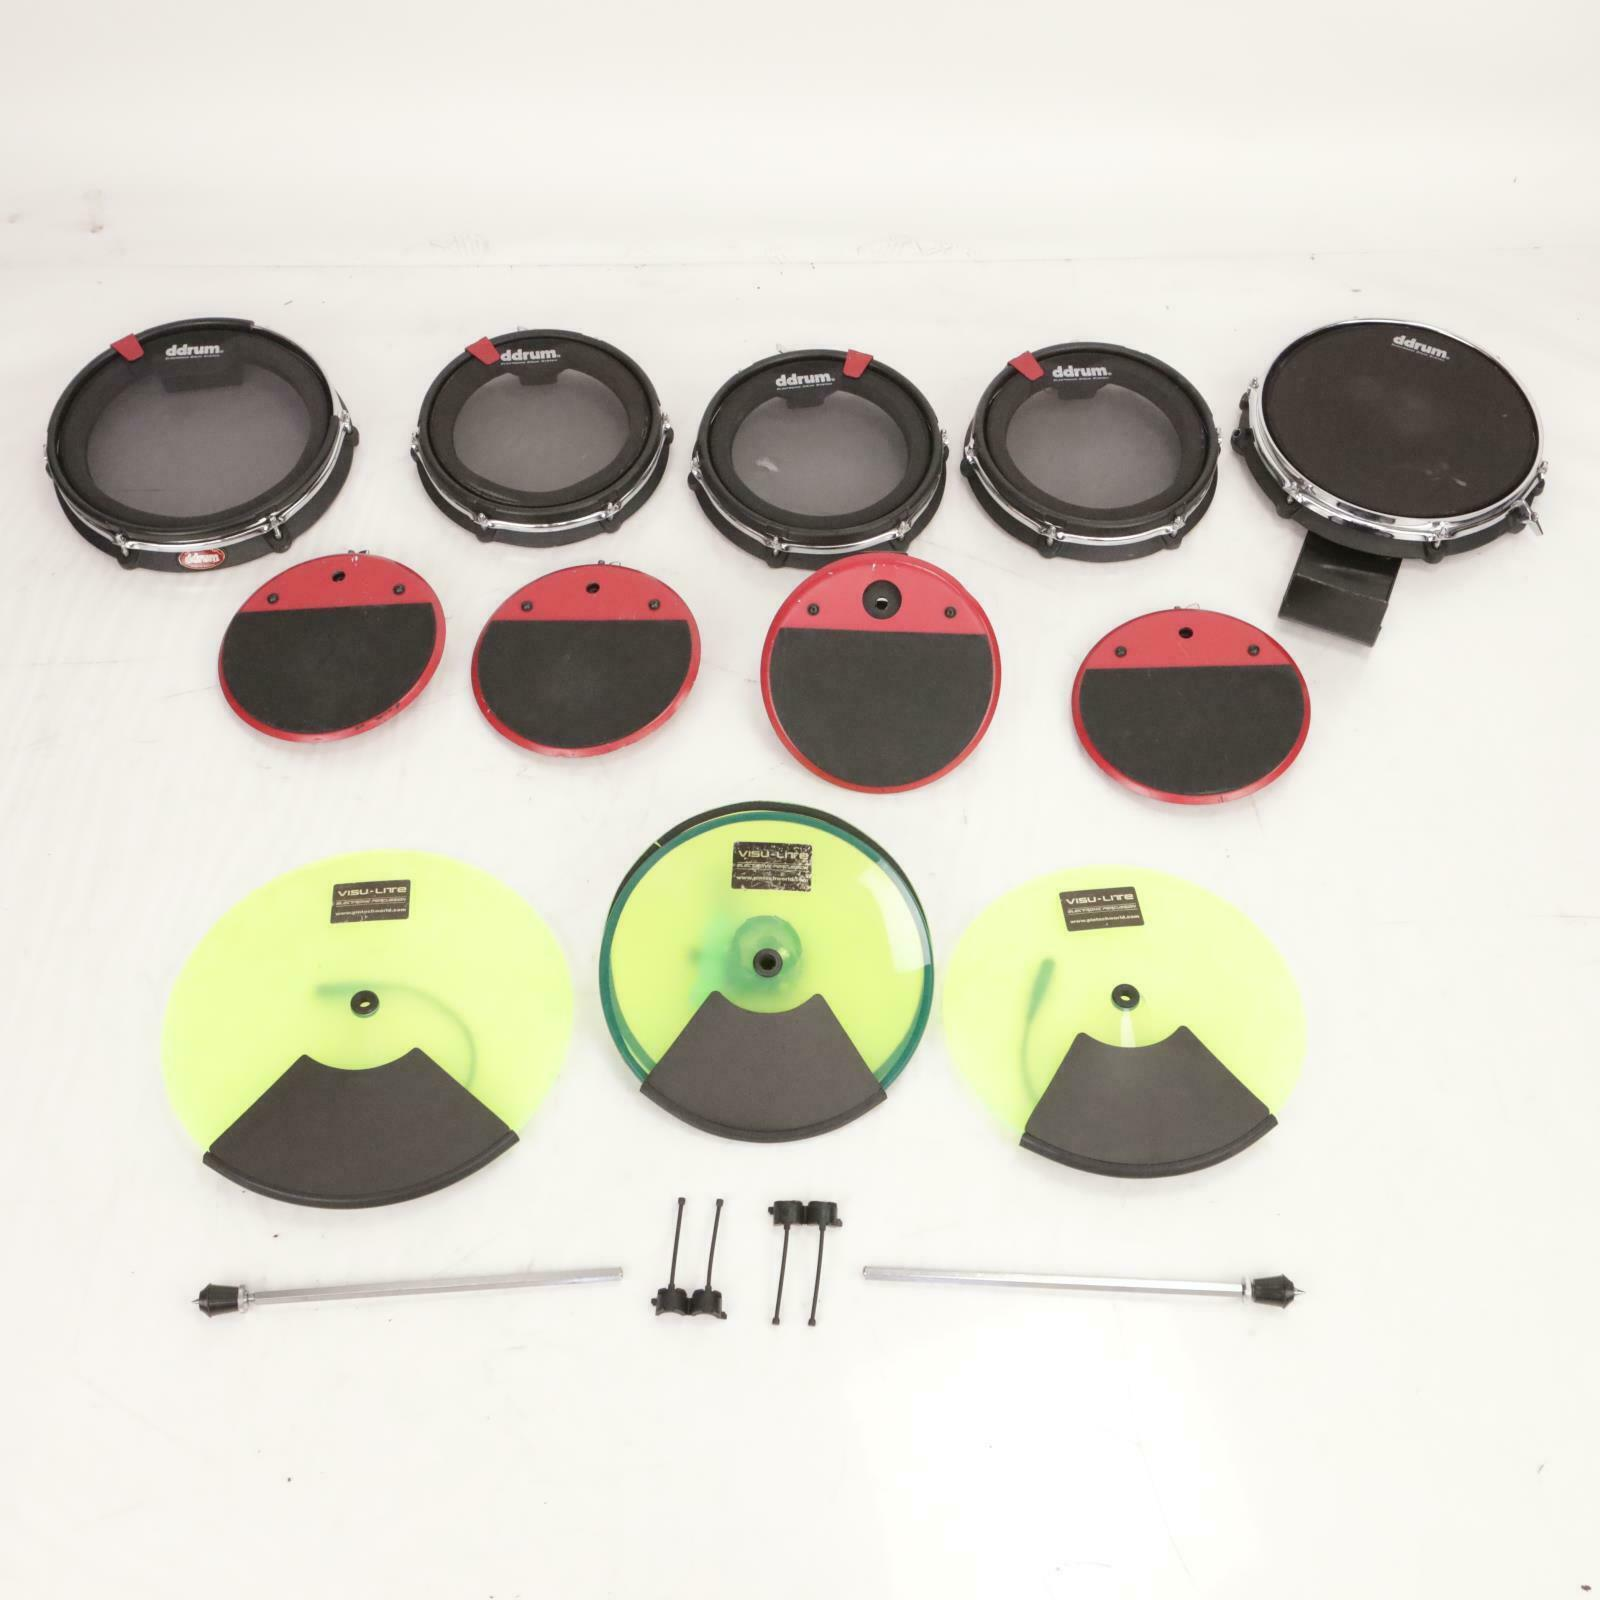 8 pc Clavia DDrum4 Cast Precision Mesh Electronic Drums Pintech Visu-lite  37180